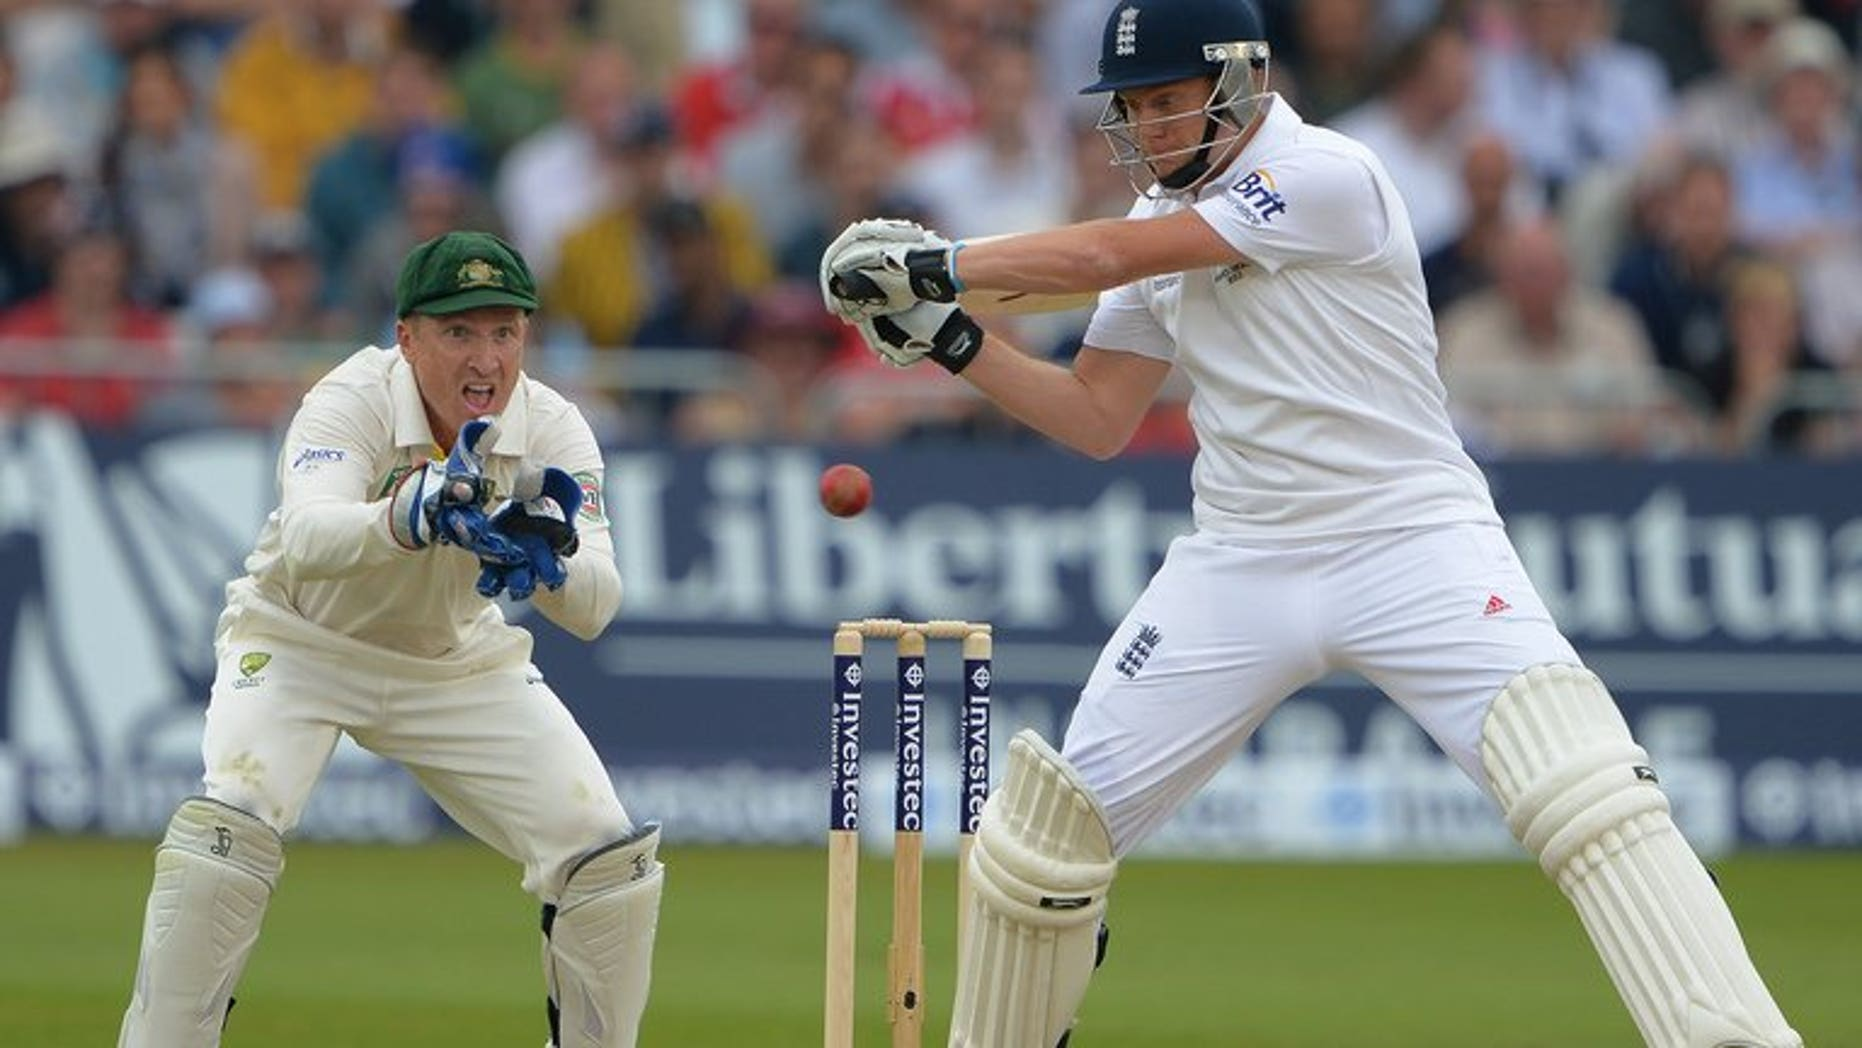 Jonny Bairstow (rights) bats in England's first innings against Australia at Trent Bridge on Wednesday. England were 157 for four in their second innings -- a lead of 92 runs -- at lunch on the third day of the first Ashes Test against Australia at Nottingham's Trent Bridge ground on Friday.